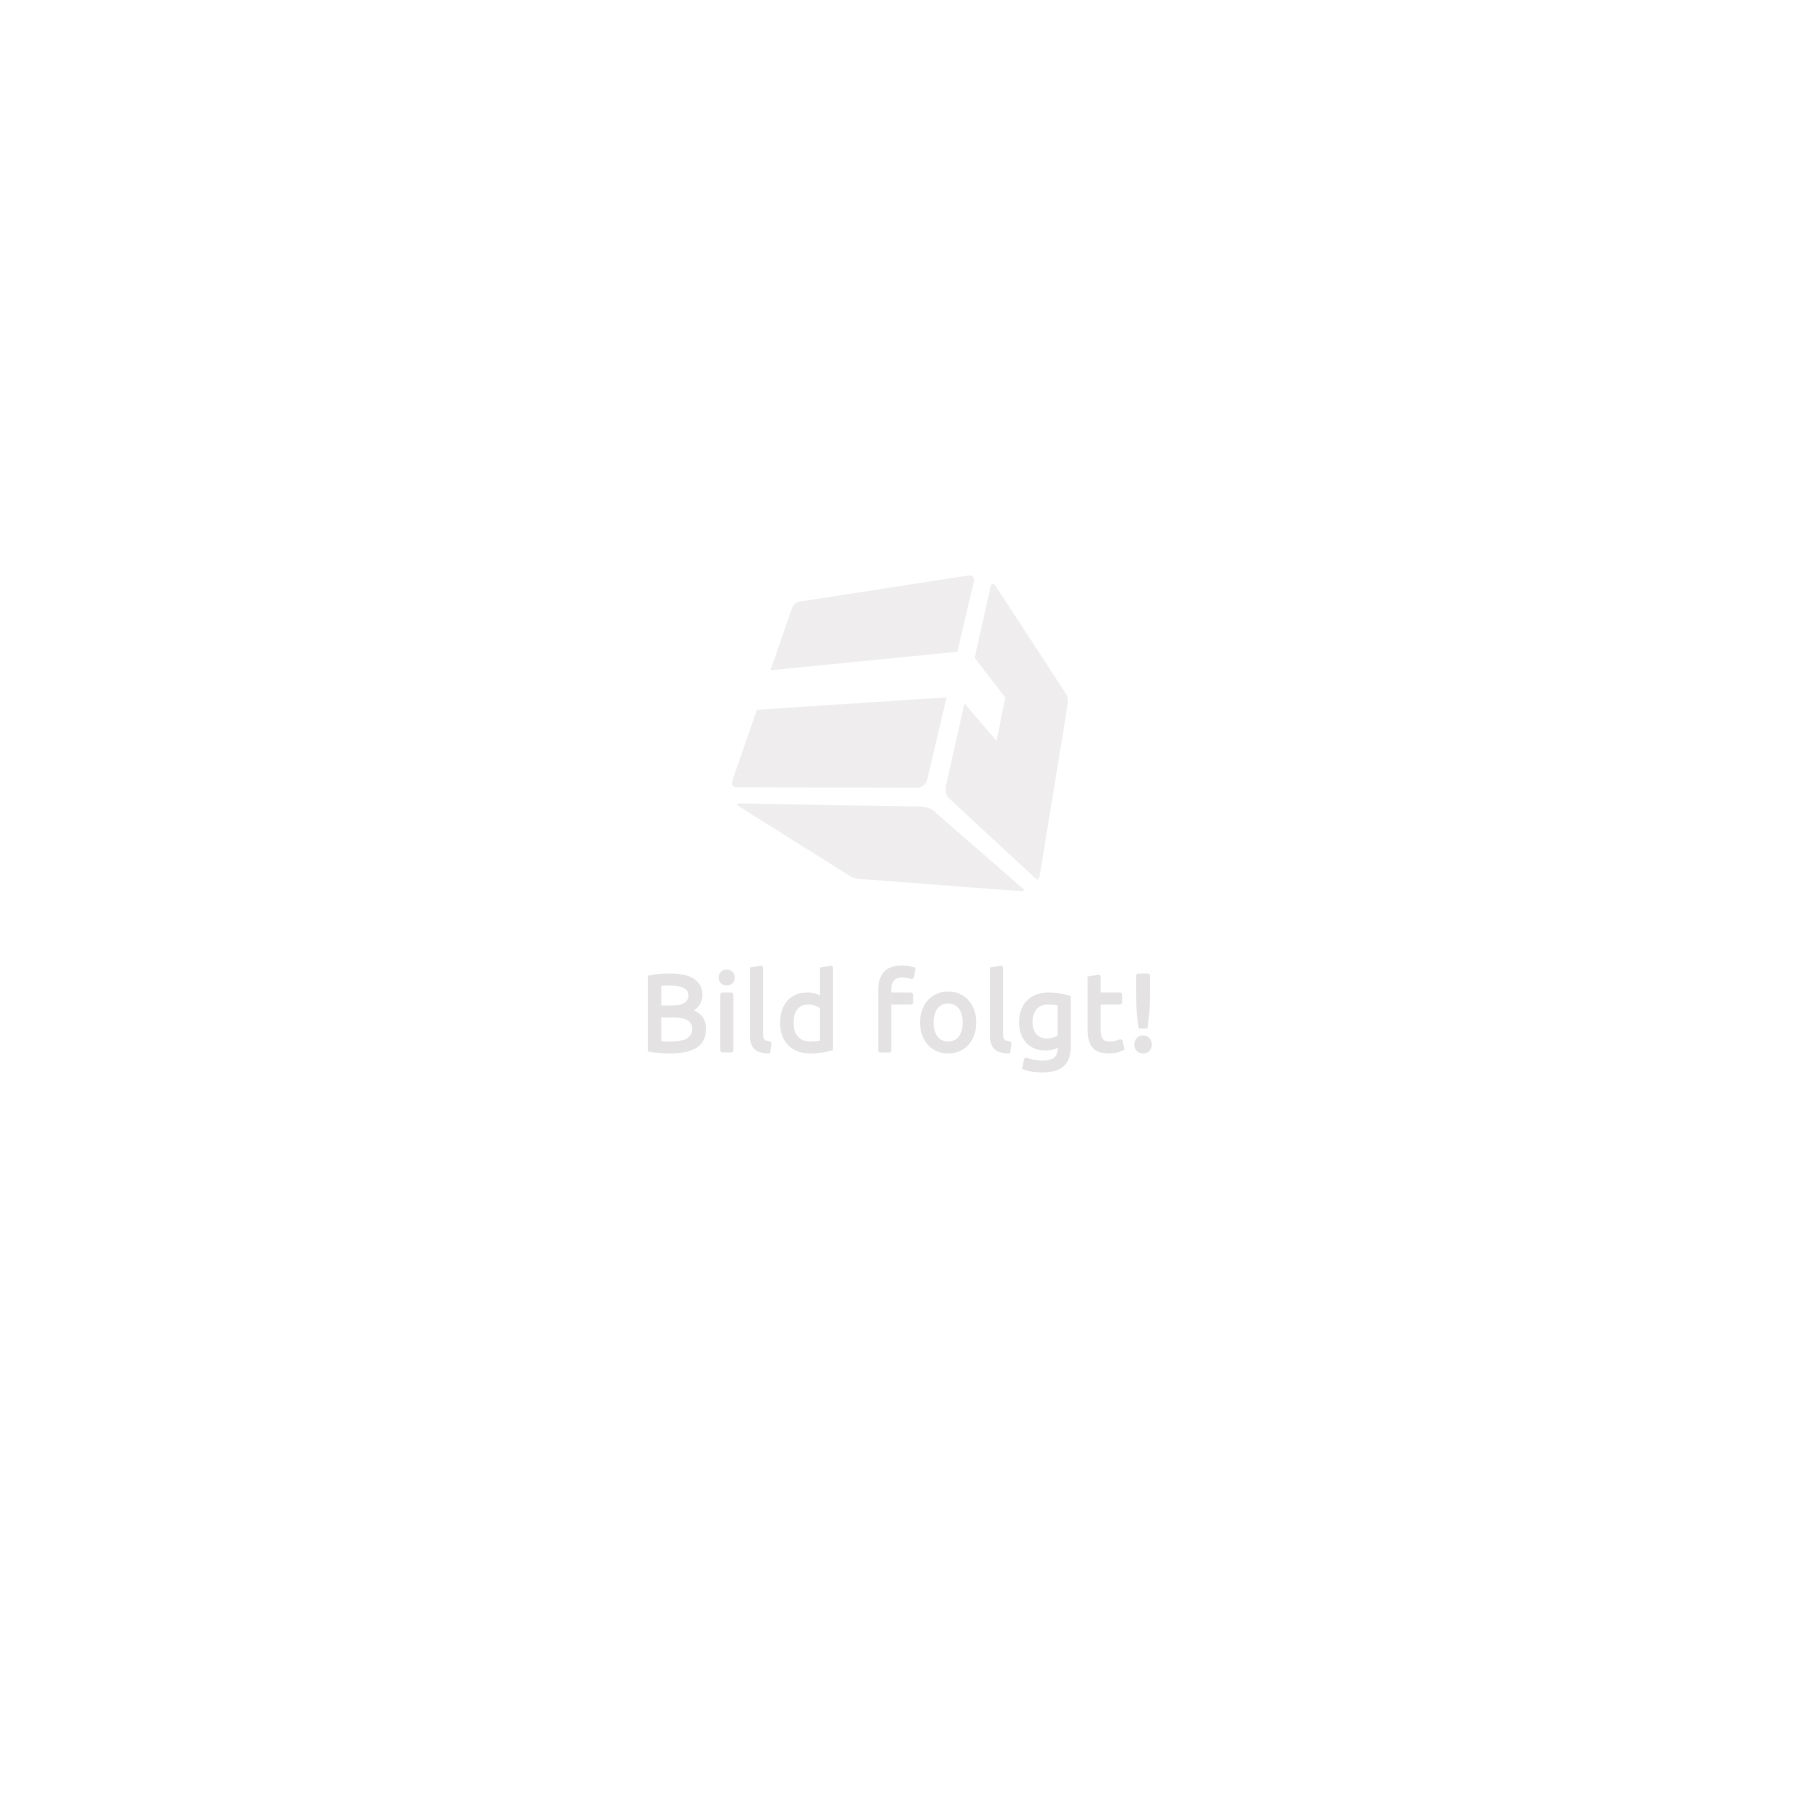 aluminium rattan sitzgruppe miami mit sofa g nstig online. Black Bedroom Furniture Sets. Home Design Ideas